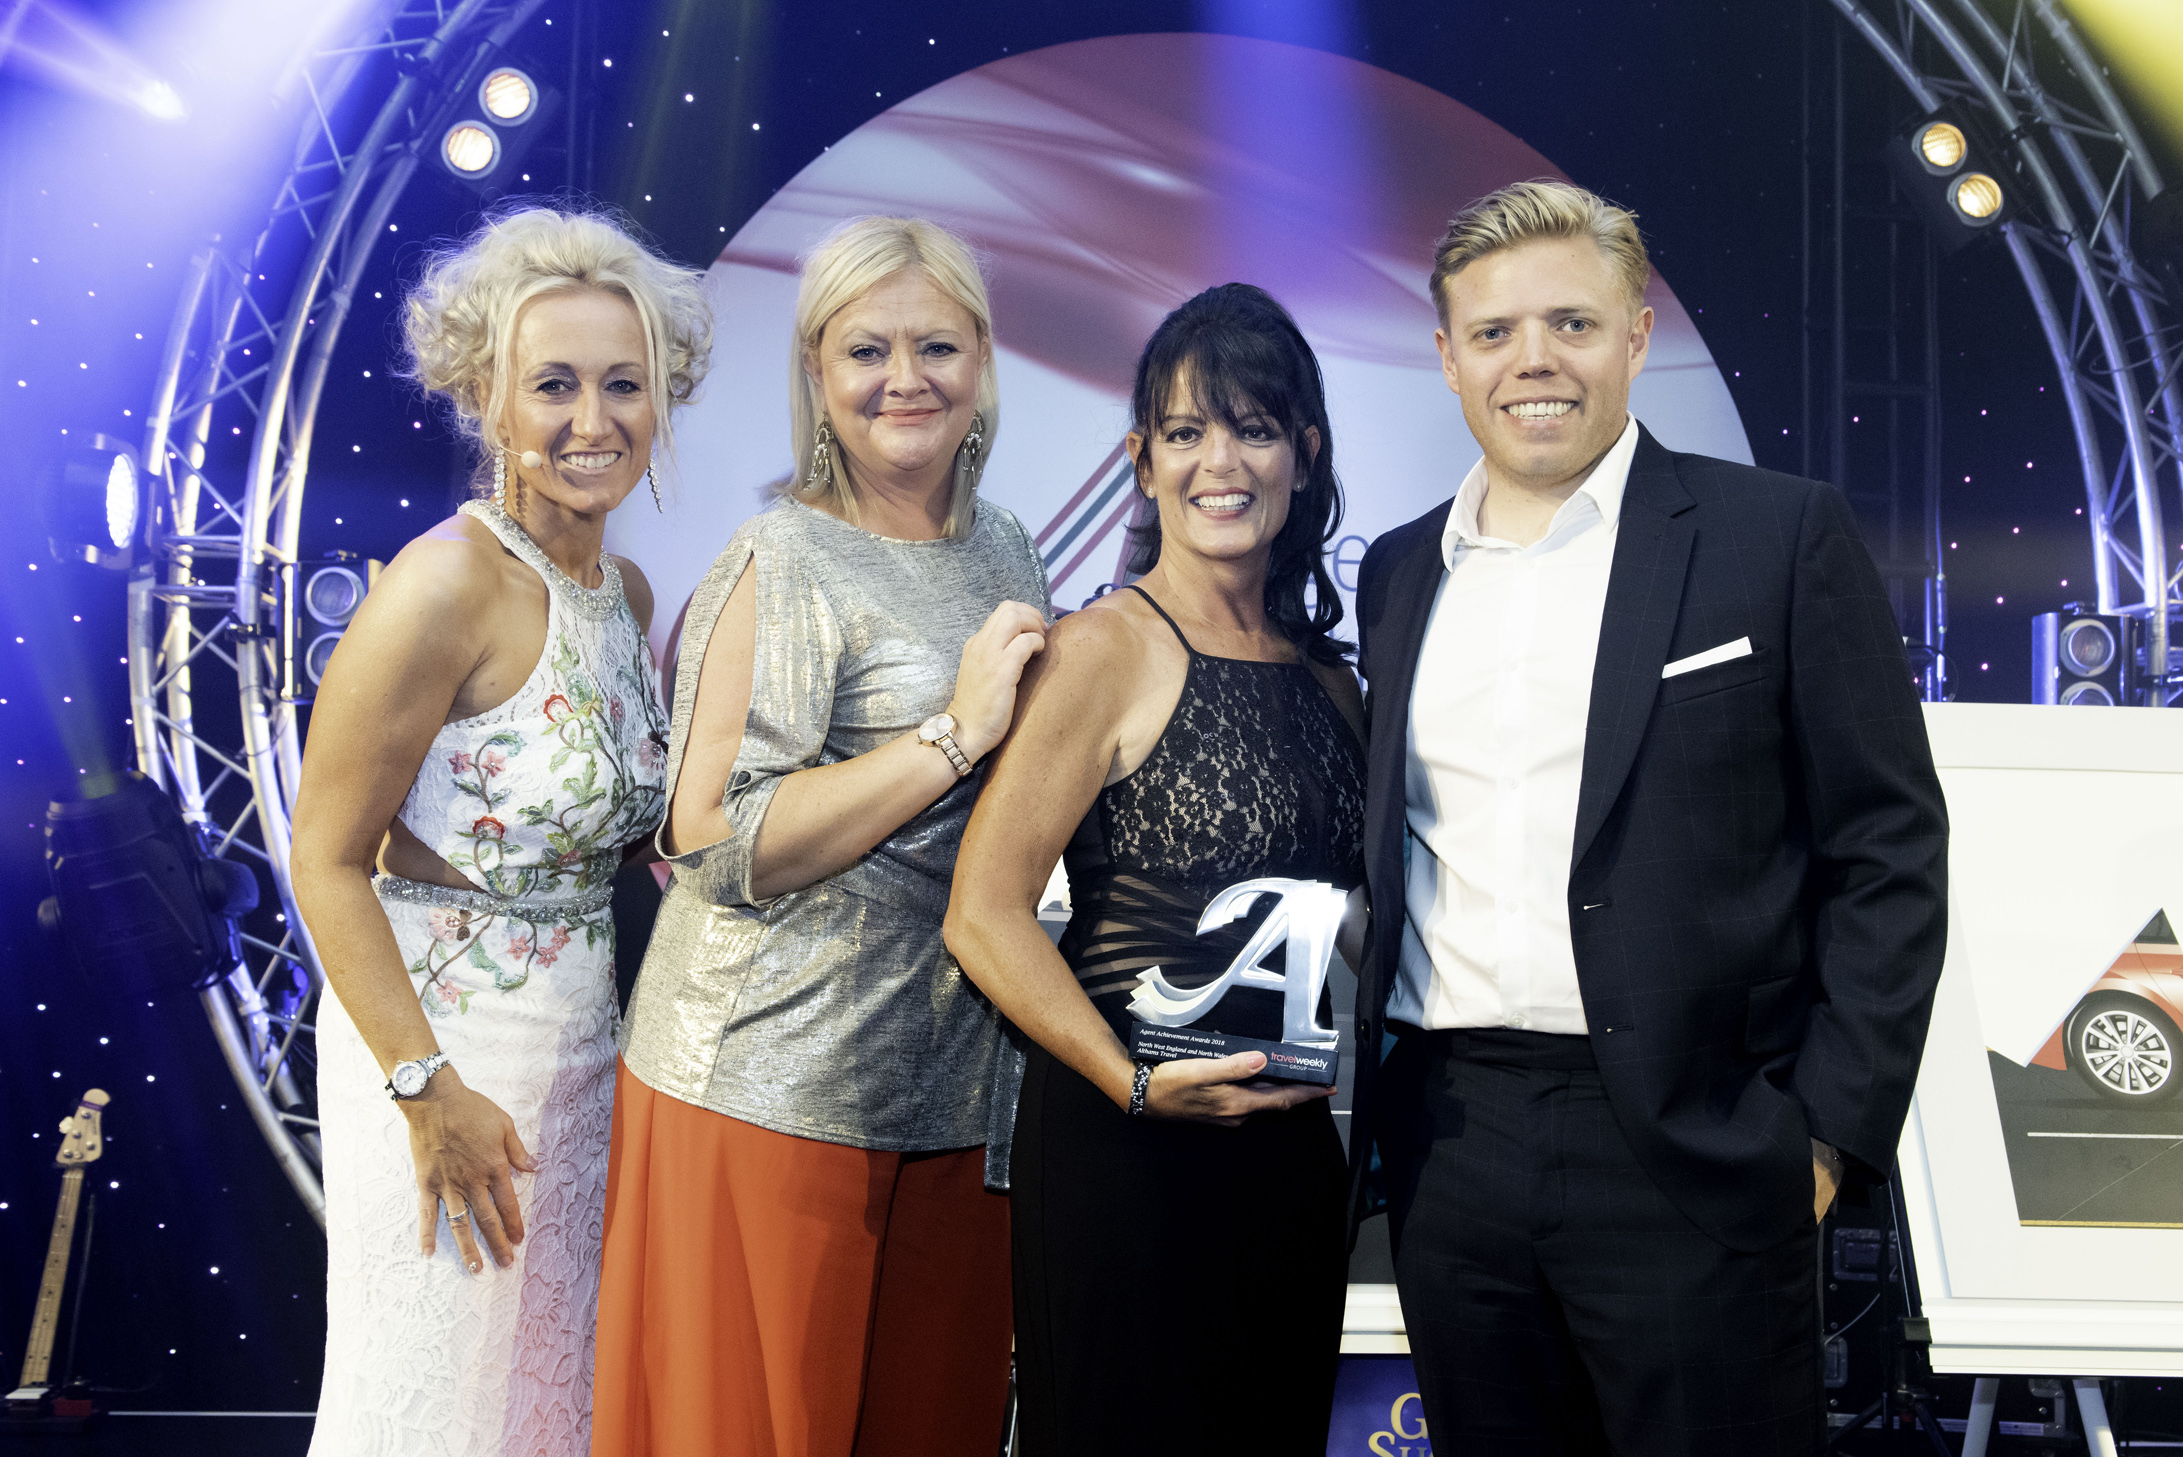 Sandra McAllister, Managing Director Receiving the Award